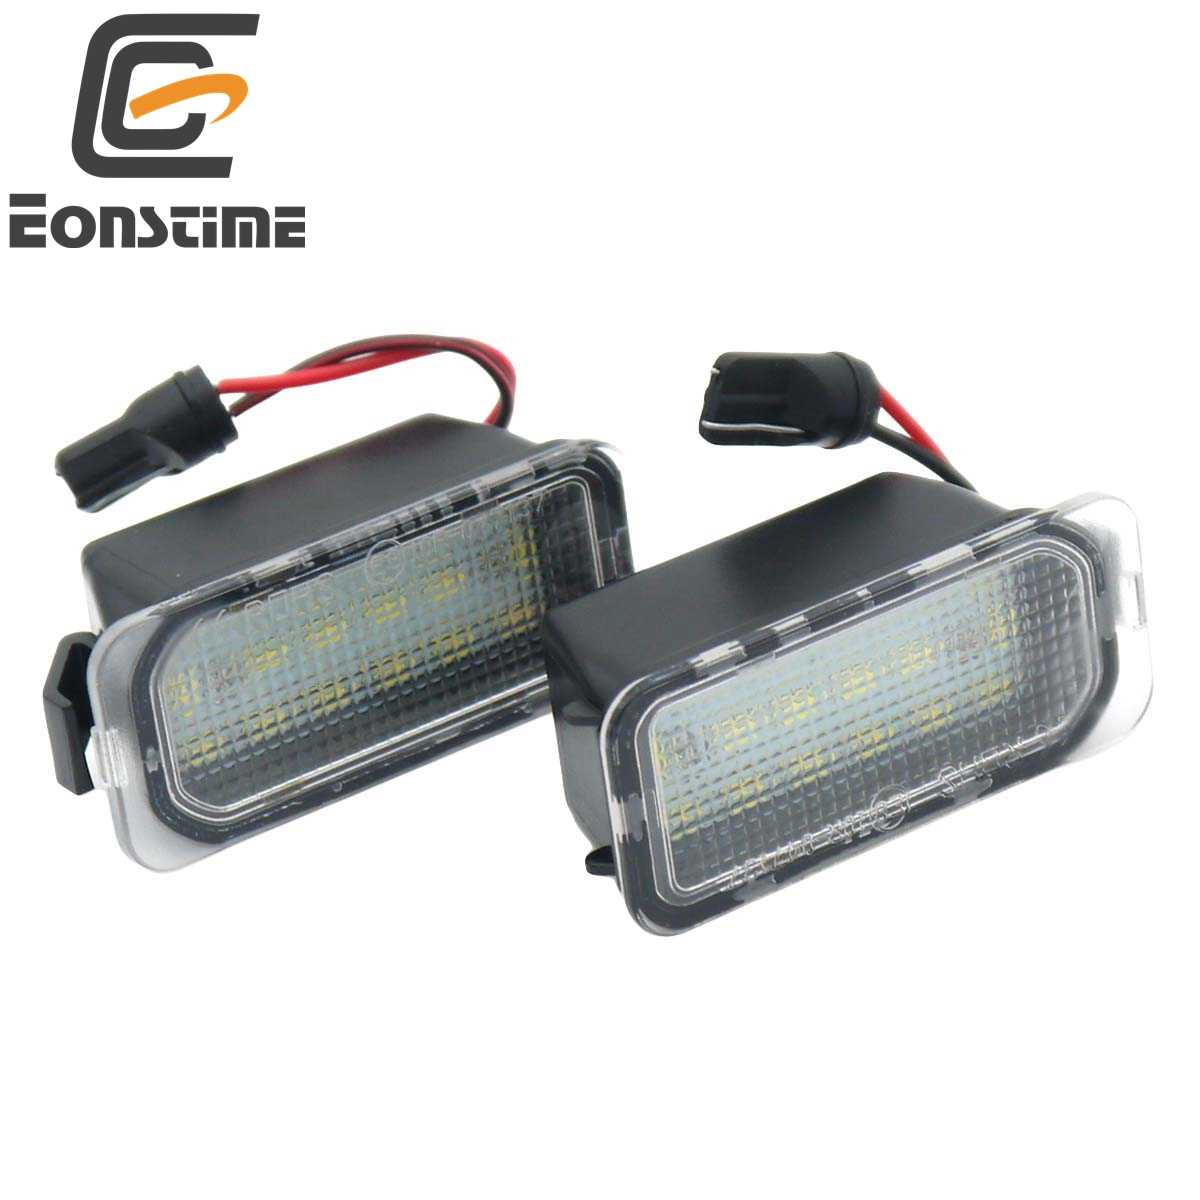 Eonstime 2Pcs 18SMD LED License Plate Number Light Lamp Error Free For Ford Fiesta JA8 Focus DA3 Focus DYB S-max C-max Mondeo 2x 18 smd led license plate light module for ford focus da3 dyb fiesta ja8 mondeo mk4 c max s max kuga galaxy